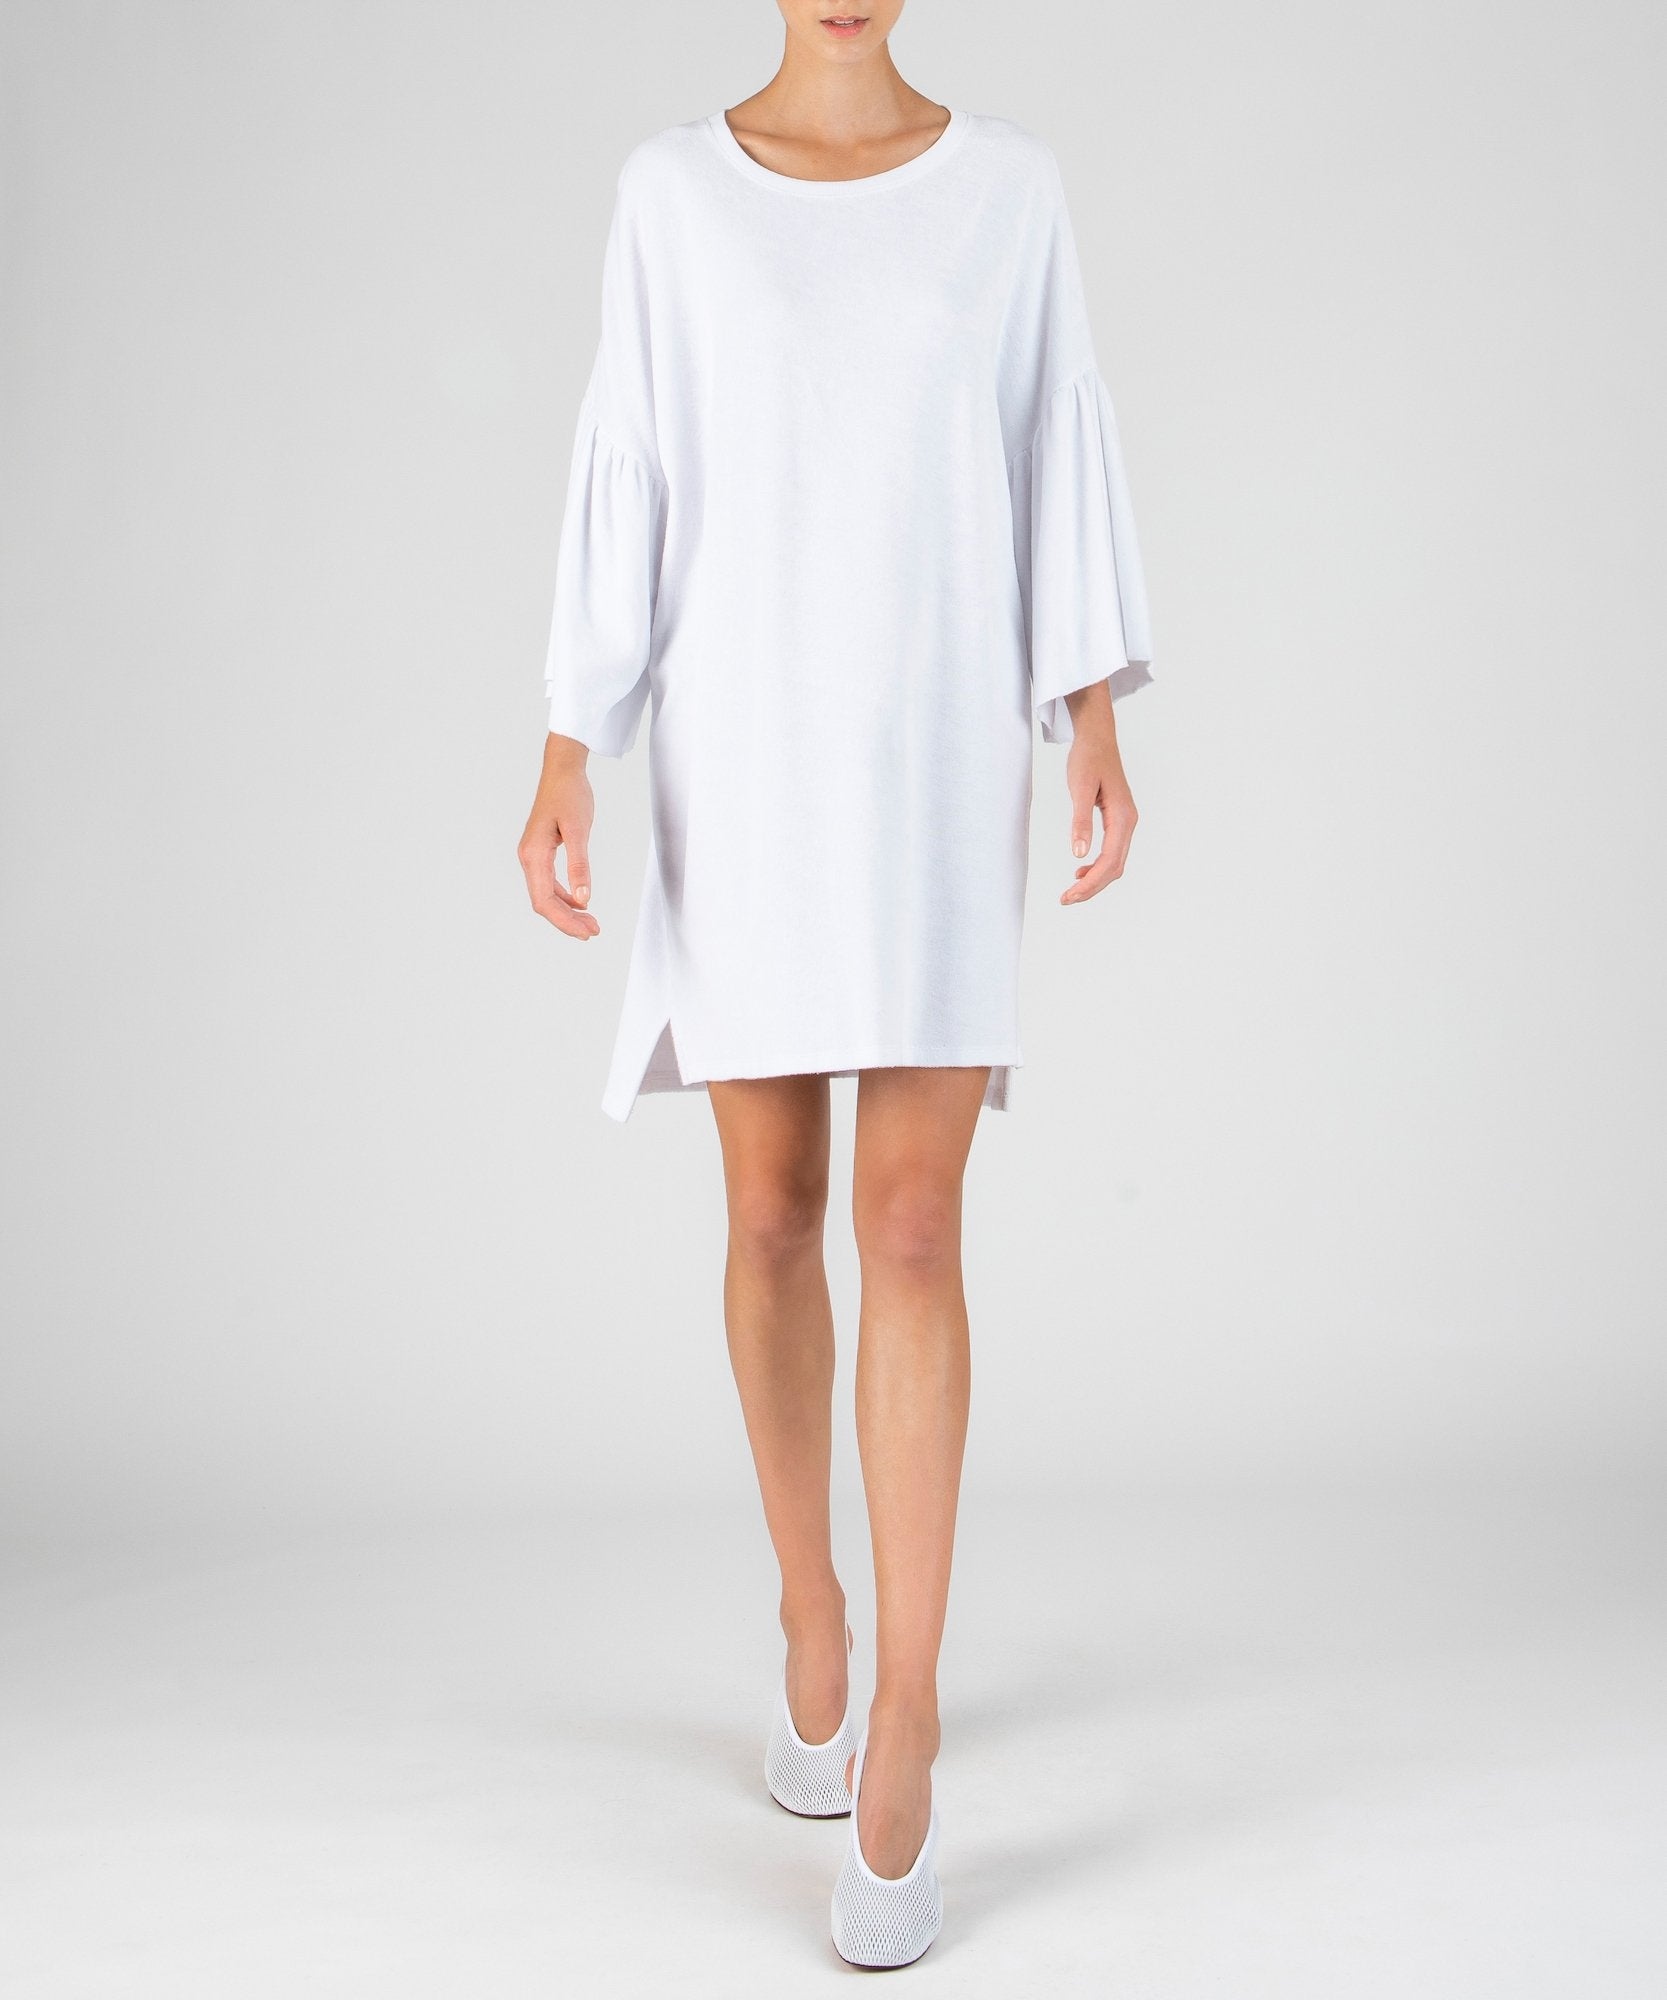 White Ruffle Sleeve Dress - Women's Casual Dress by ATM Anthony Thomas Melillo